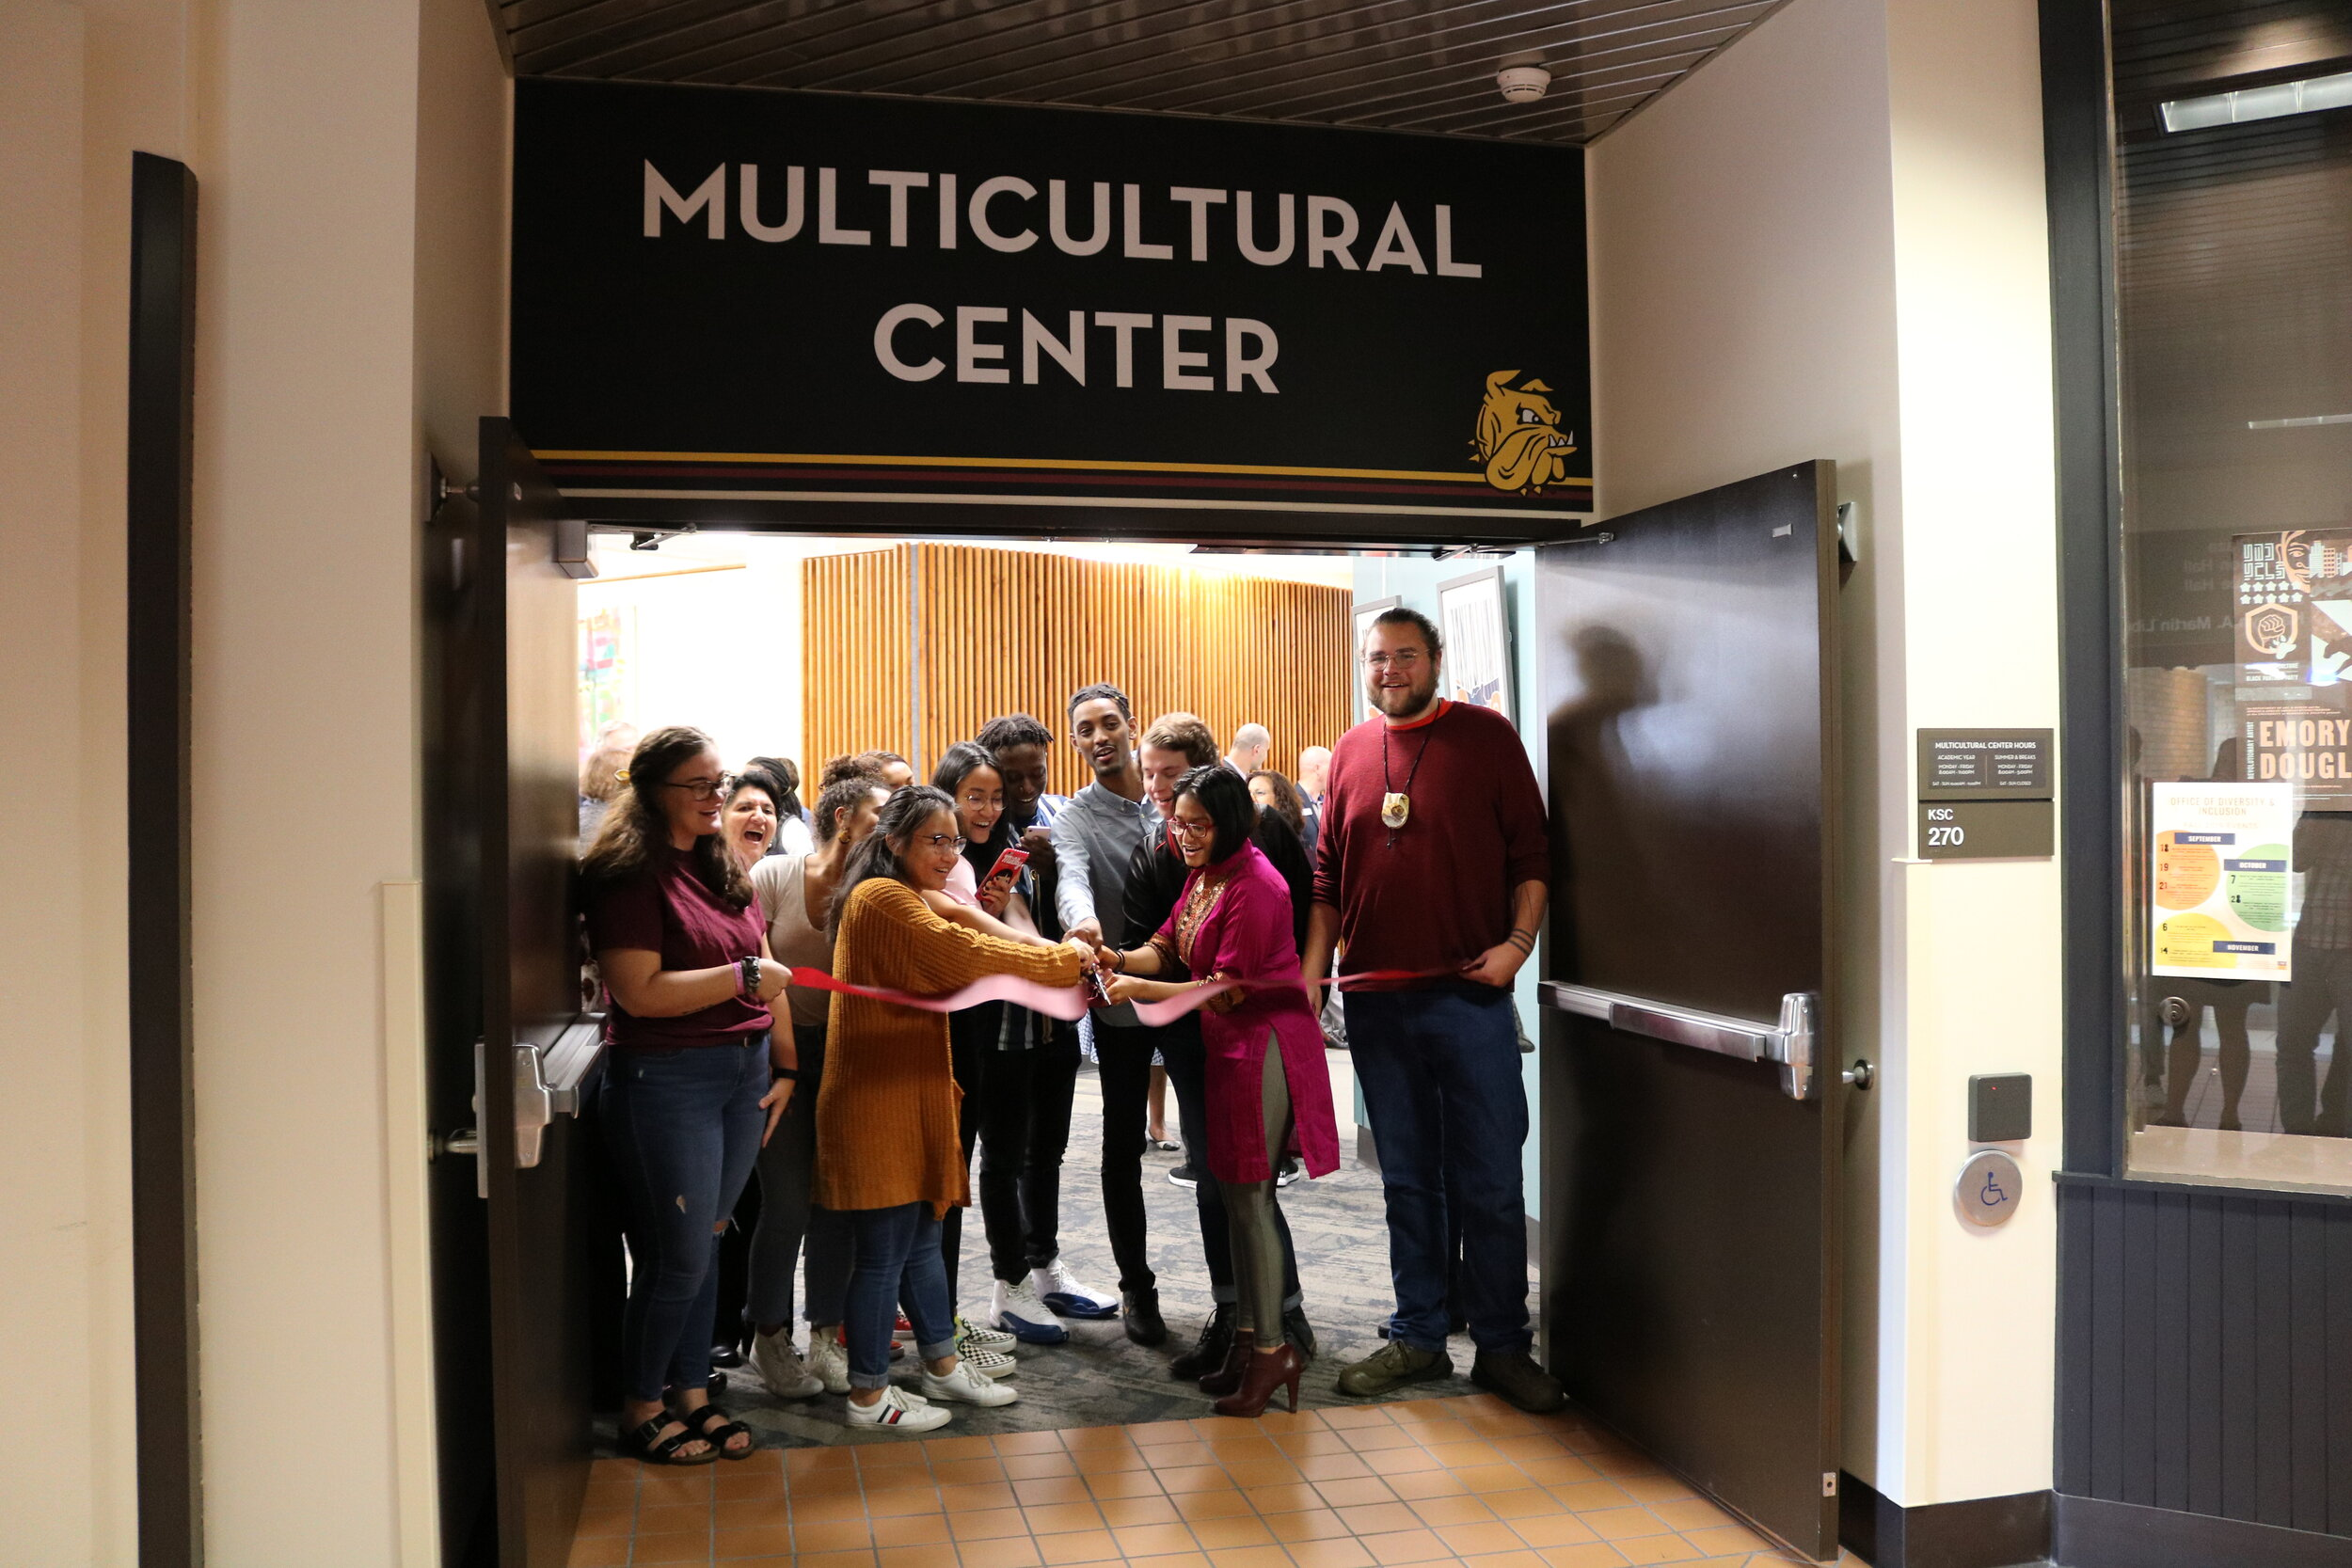 Students and faculty officially reopen the Multicultural Center with a ribbon cutting ceremony at the spaces main entrance. Photo courtesy Kirby Student Center